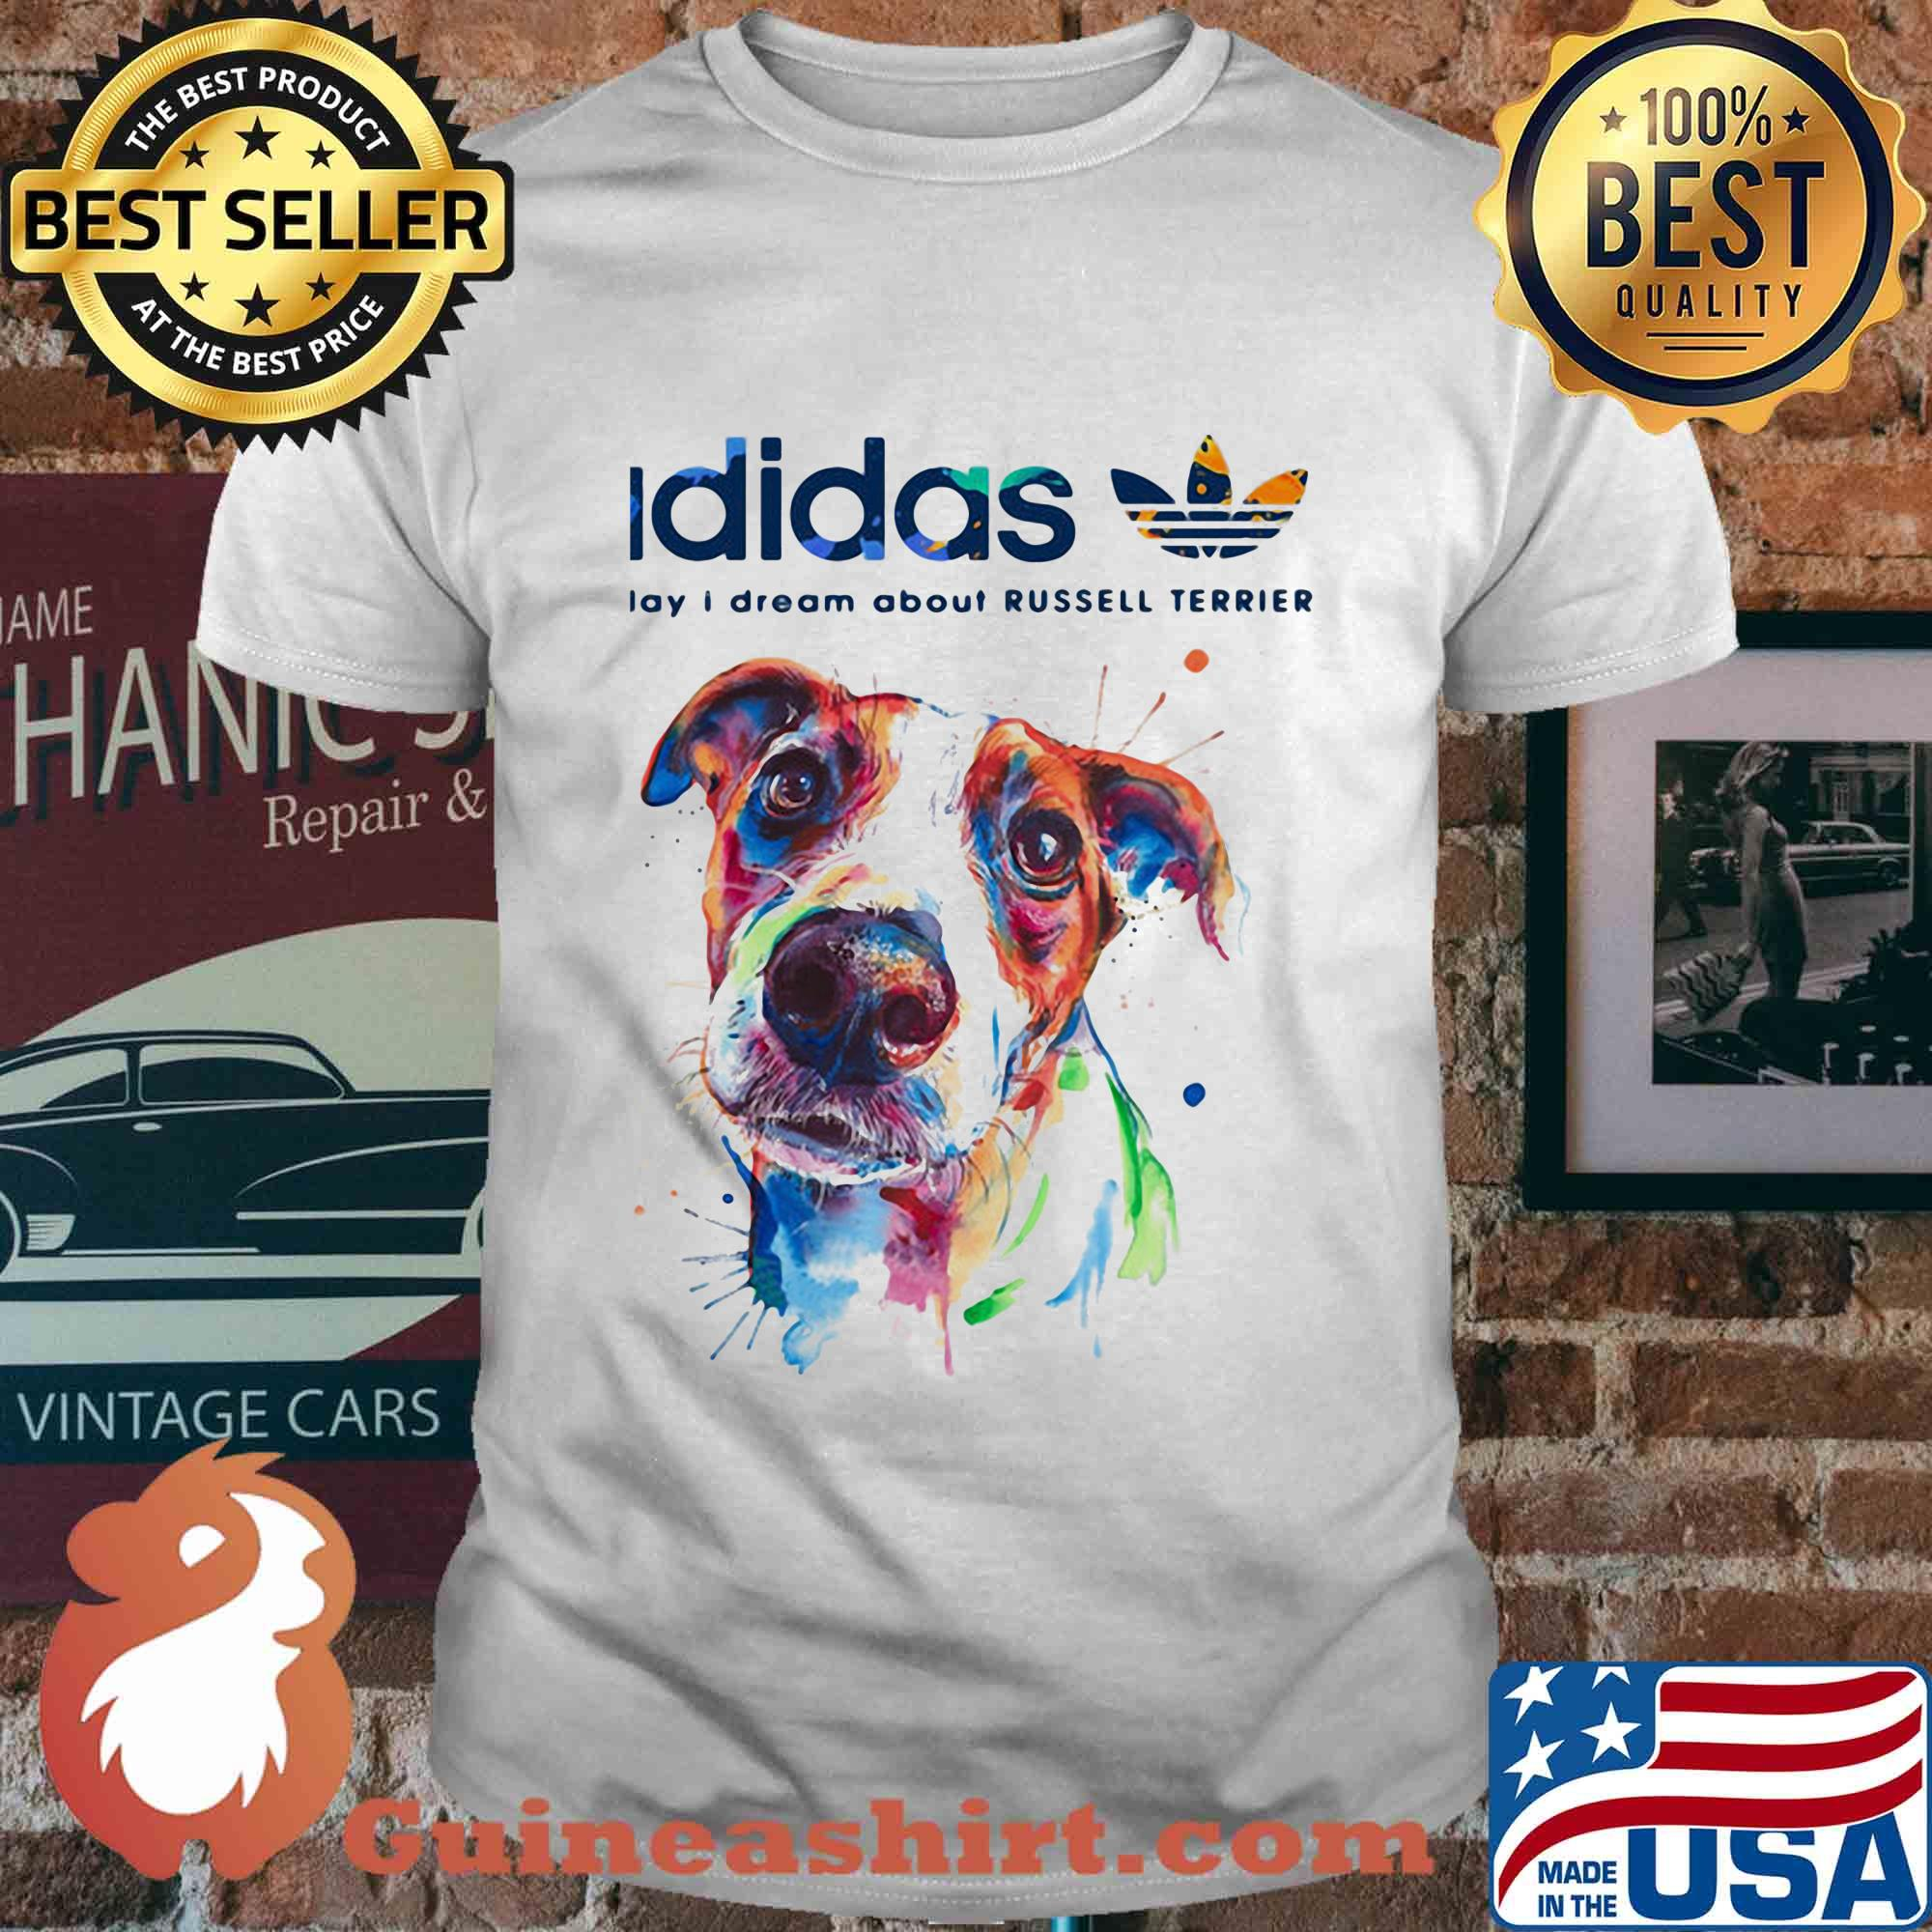 Adidas all day I dream about Russell Terrier dog shirt